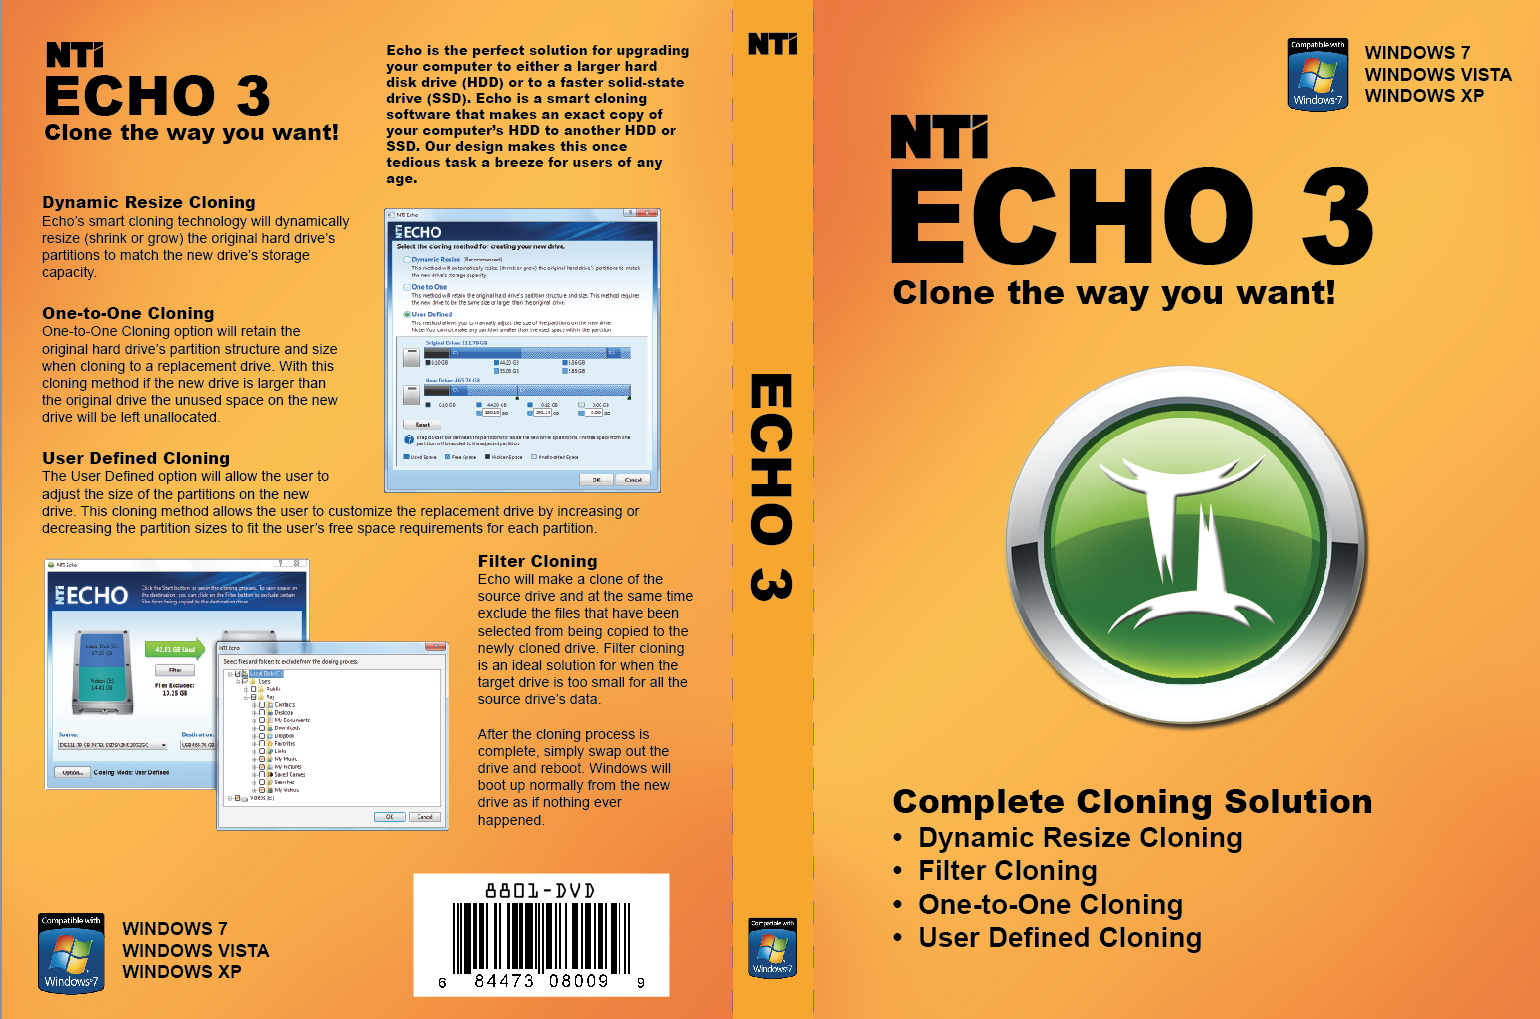 nti echo 3 product key